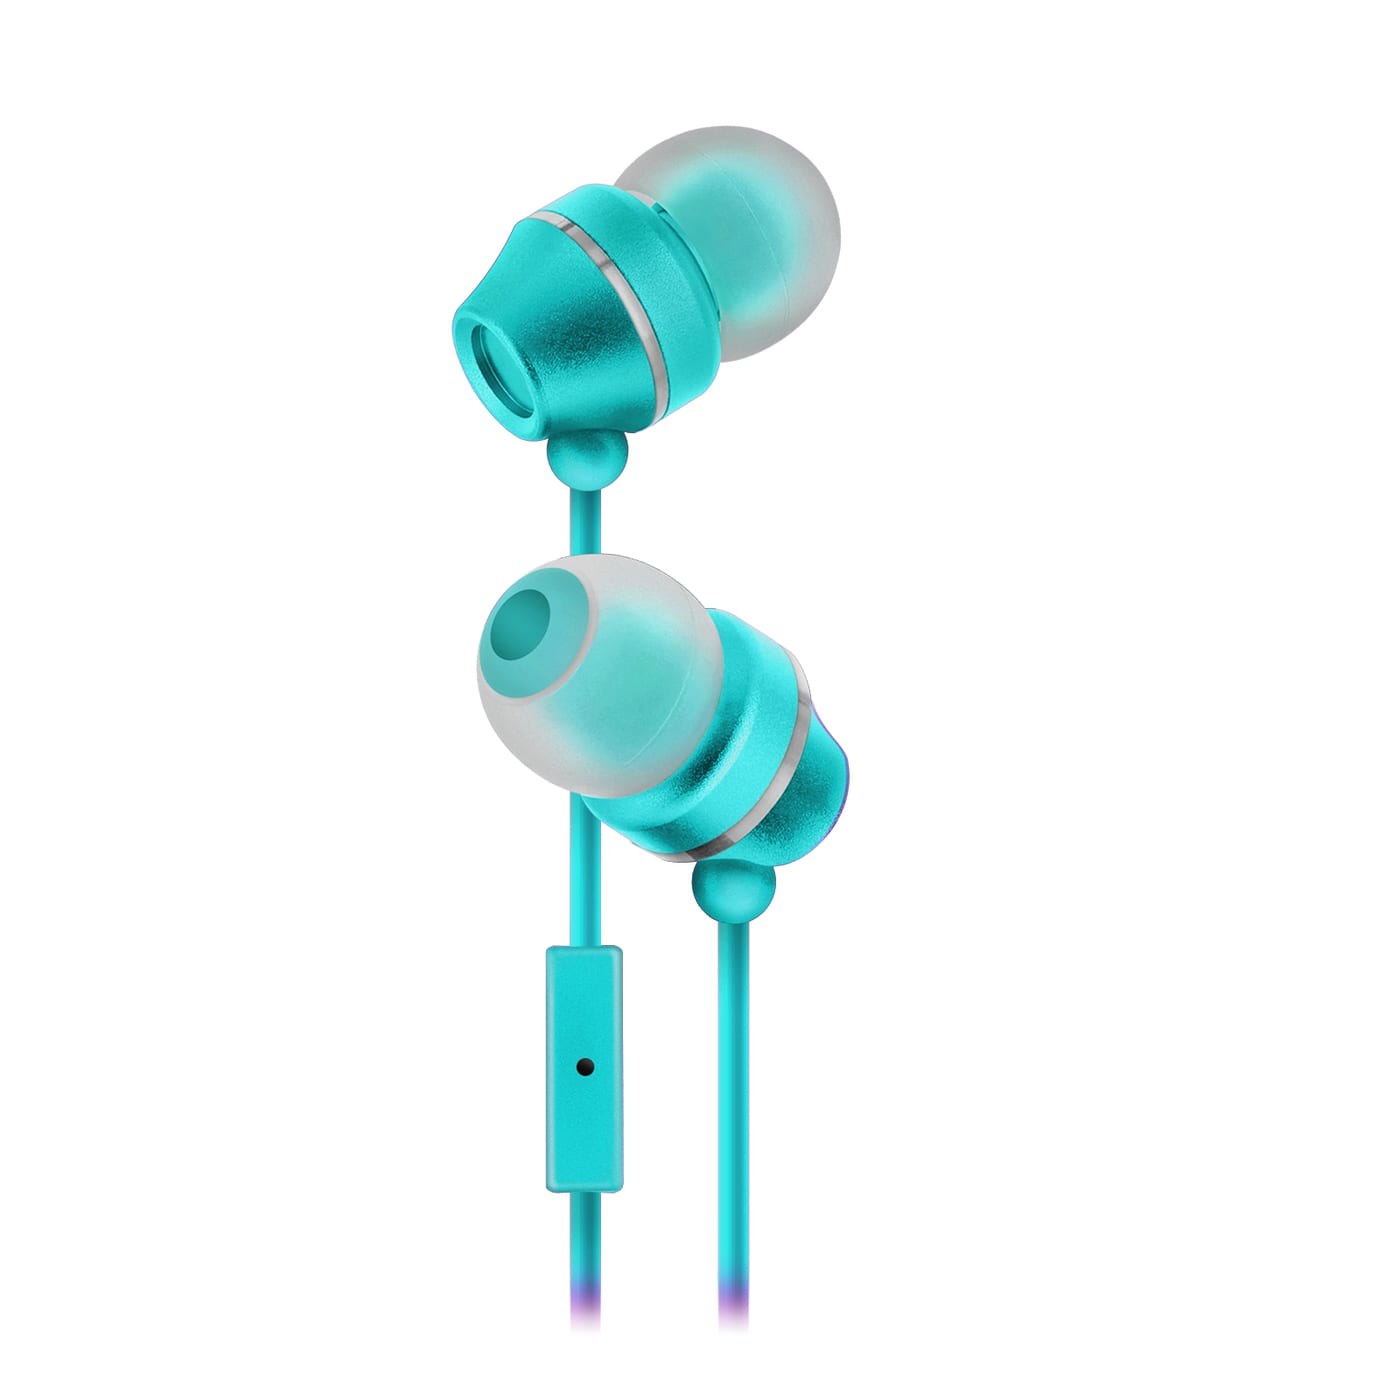 Sentry Industries HM165: Stereo Earbuds with in-line Mic in white package In Green